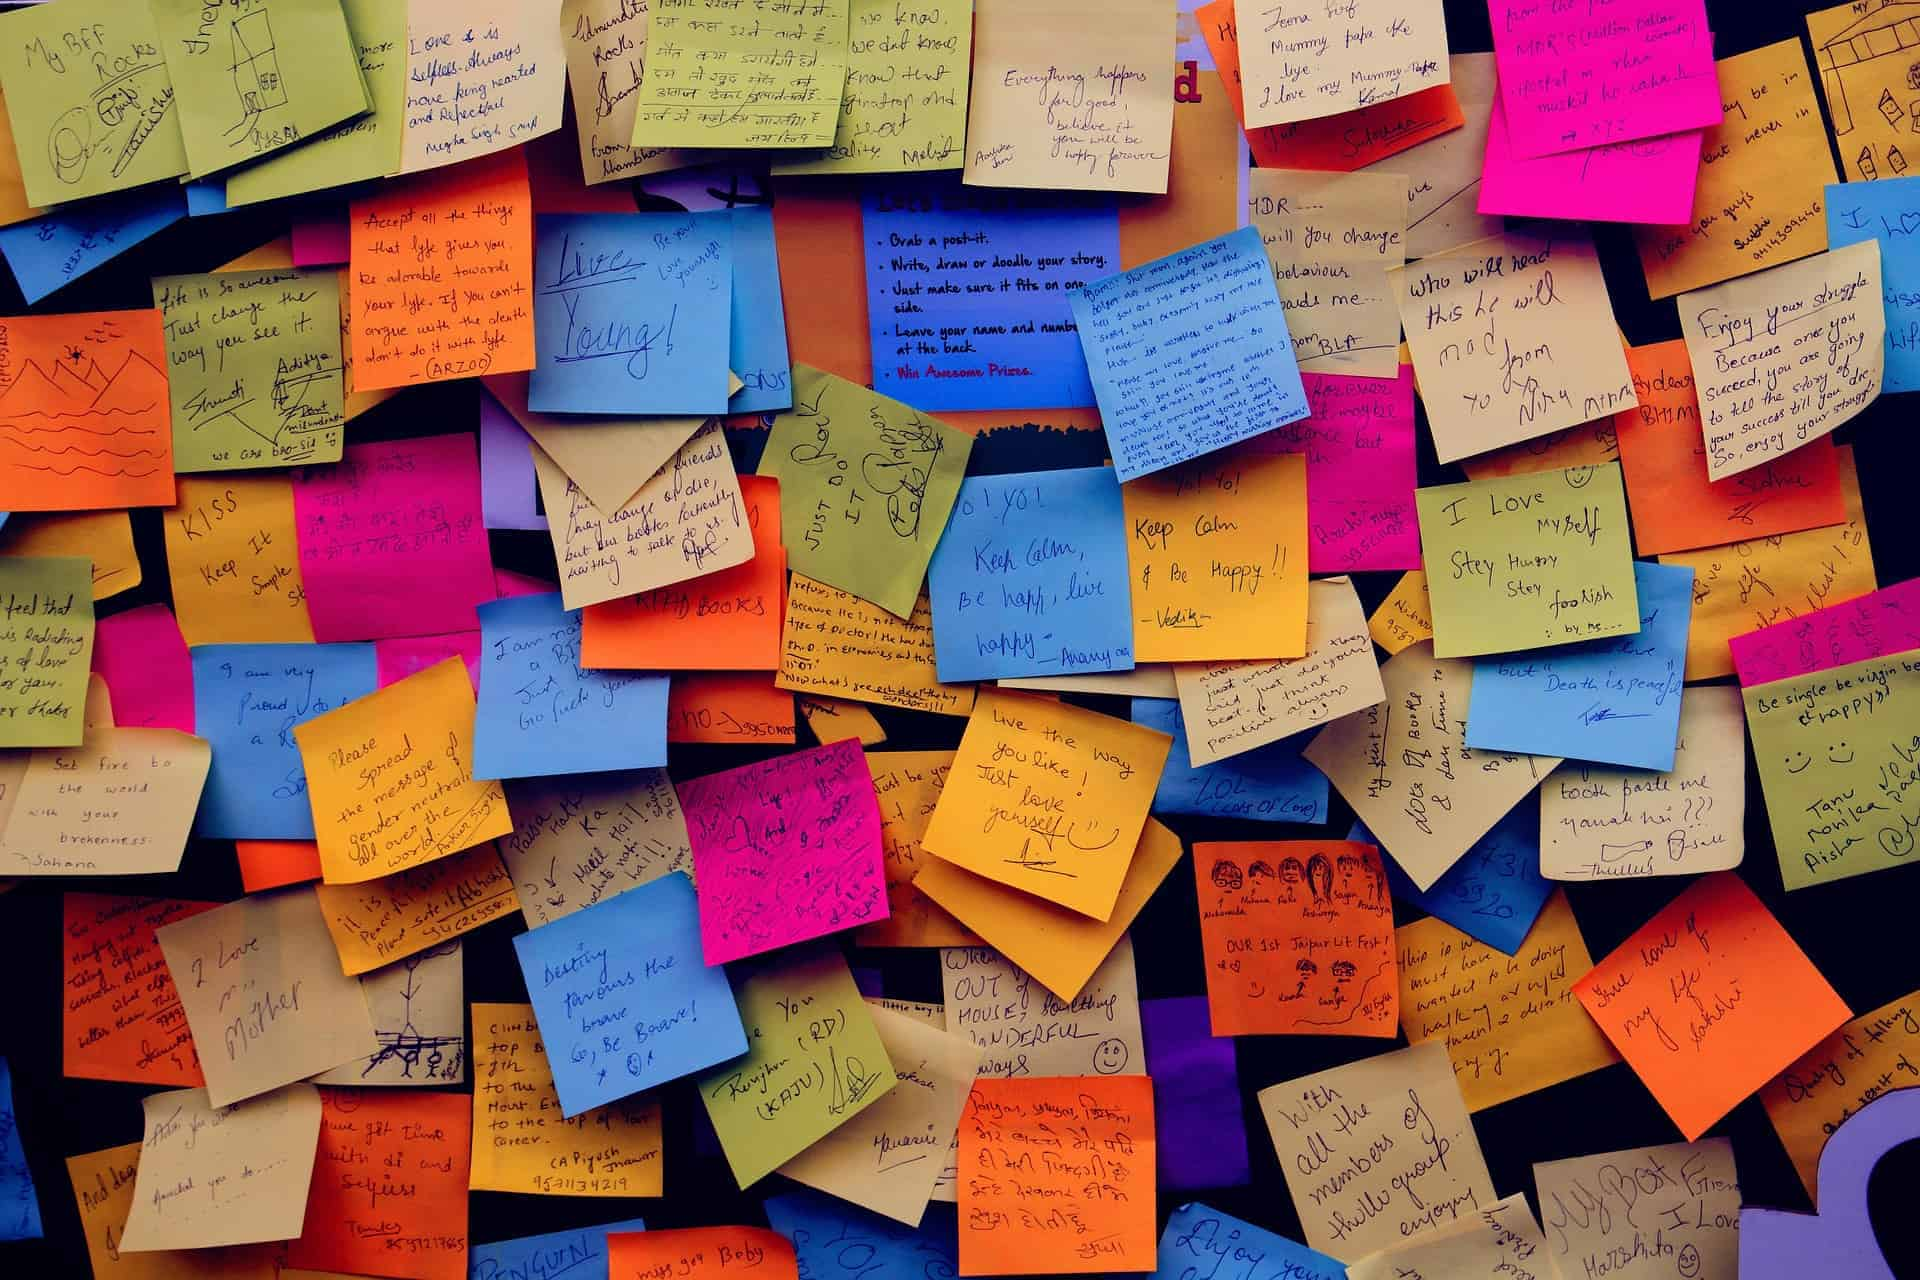 Motivational Sticky Notes, How Inspirational Quotes & Mantras Can Make You Happy, Made You Smile, Made You Smile Back